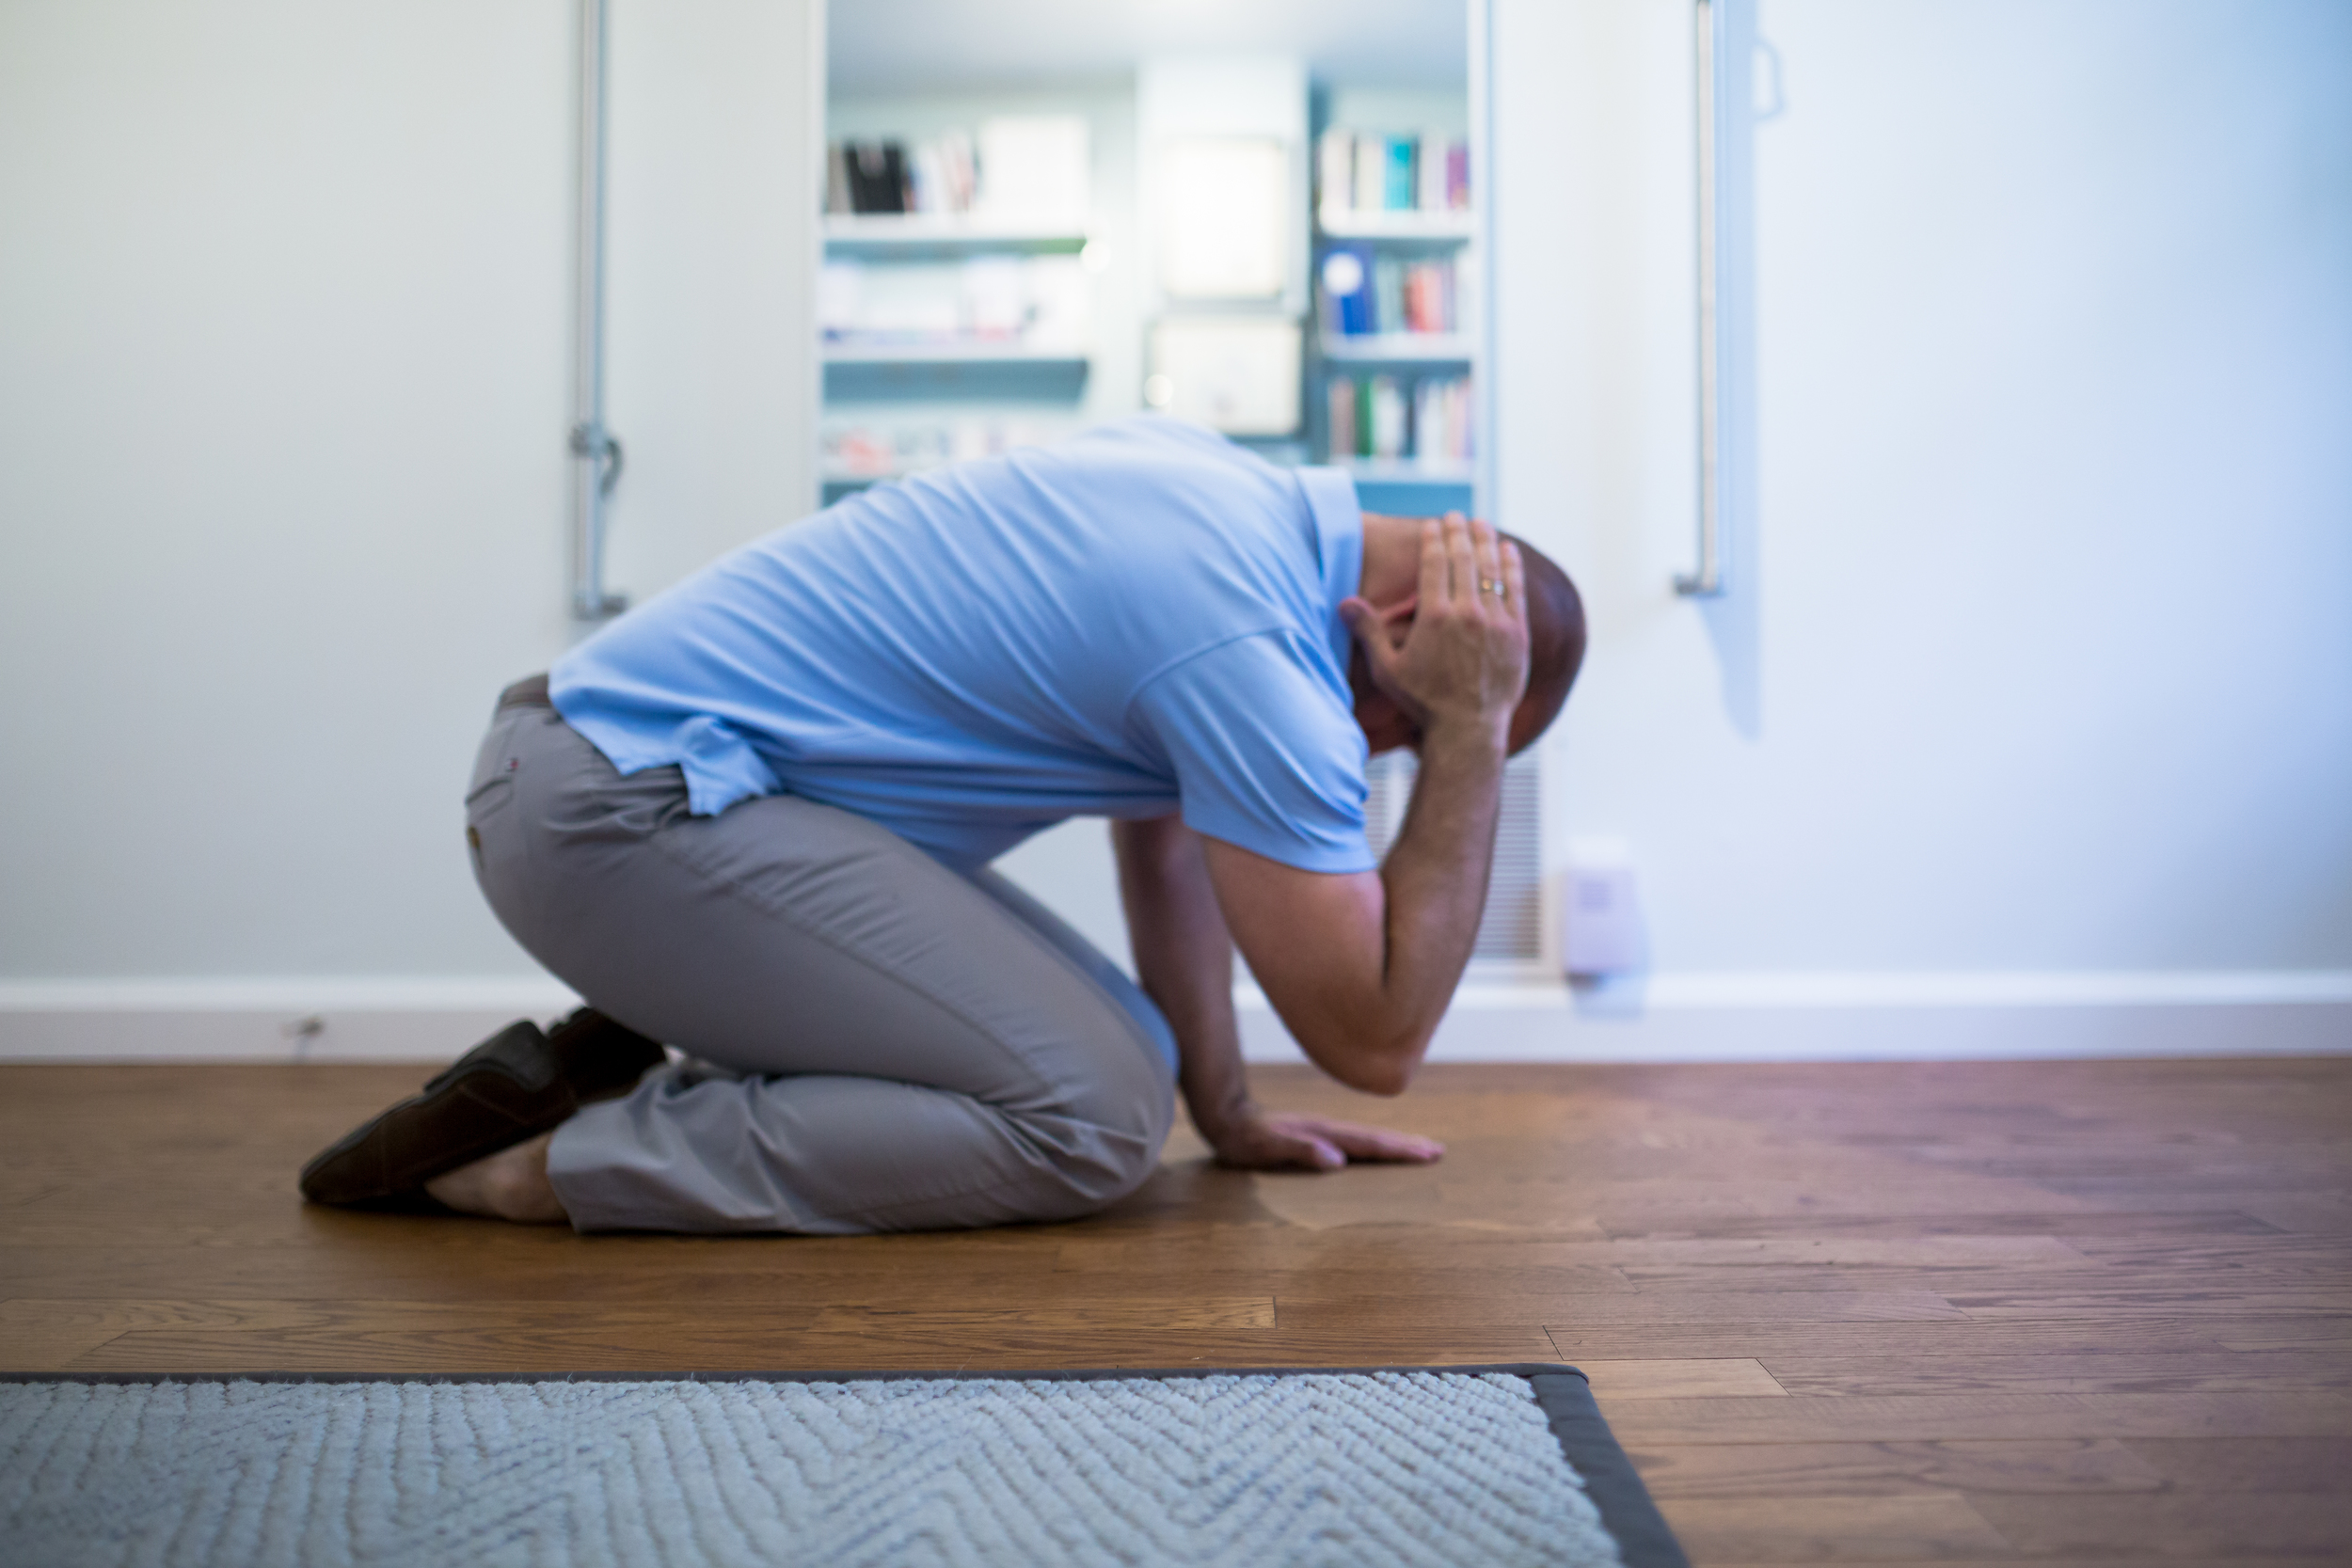 STEP 2:  Take your right arm off the floor and gently place your hand behind your ear. Make sure you keep your weight evenly distributed between your legs and your left hand on the floor. Take a breath, inhale and then as you exhale begin moving towards Step 3.